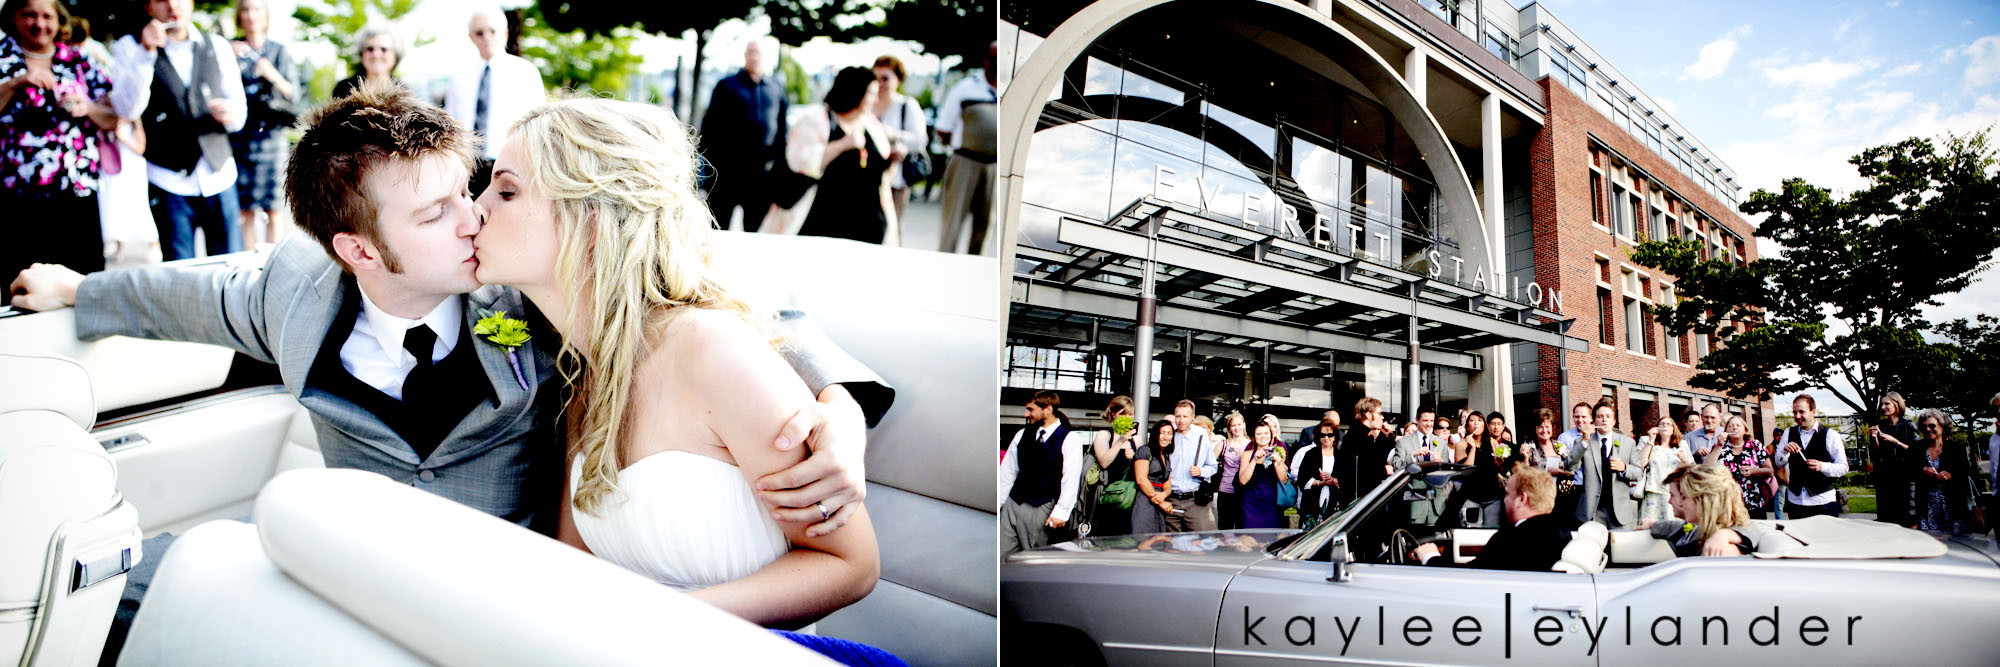 0639 Everett Train Station Wedding | Grey Tuxes & Green Flowers! | Seattle Wedding Photographers